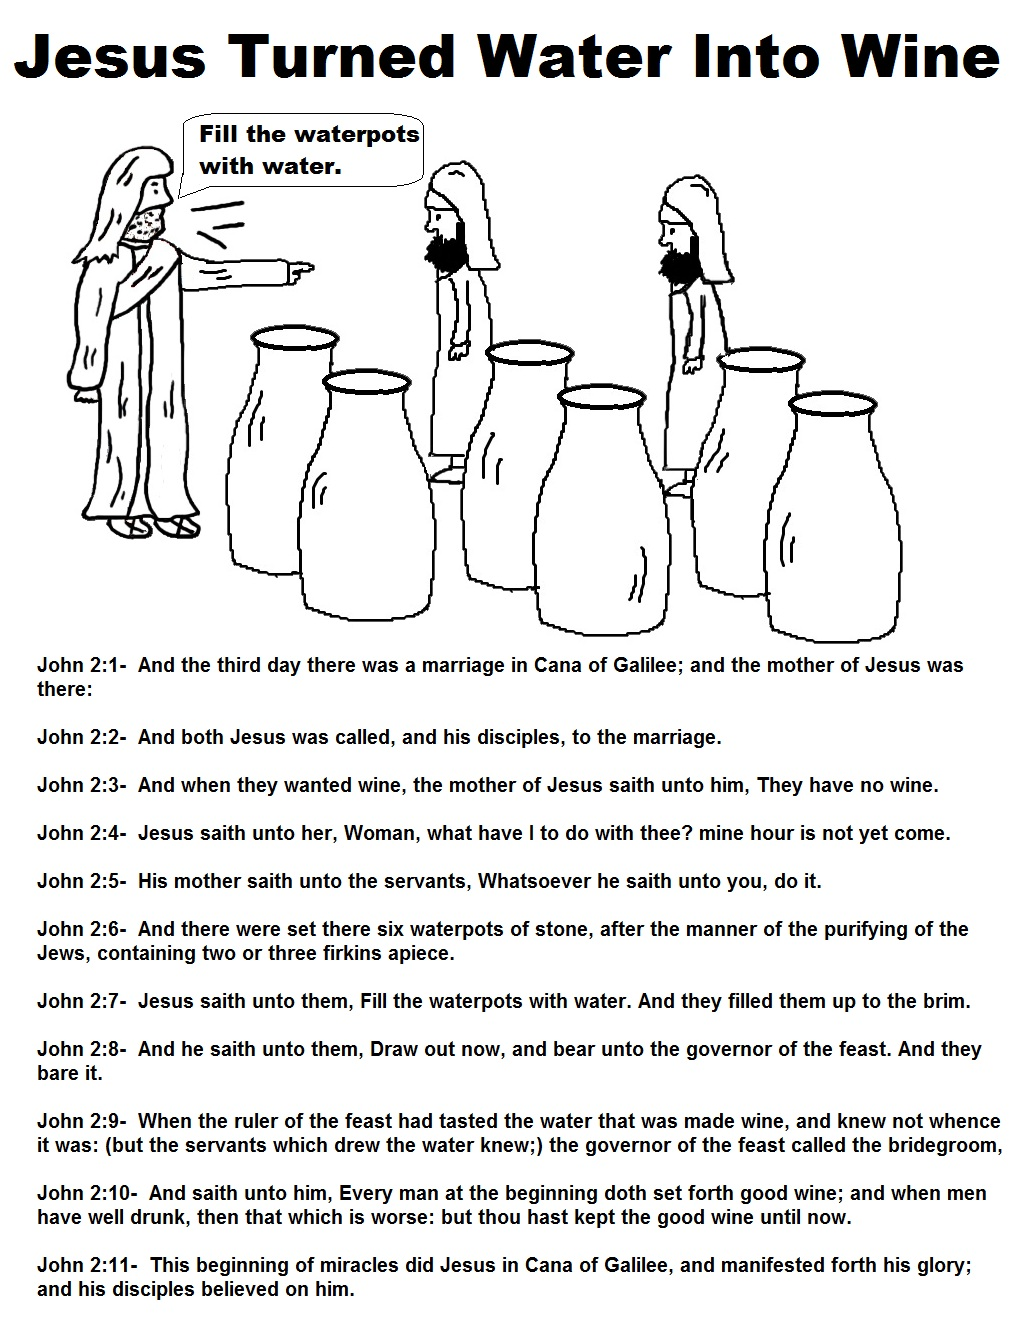 Jesus Turns Water Into Wine Sunday School Lesson